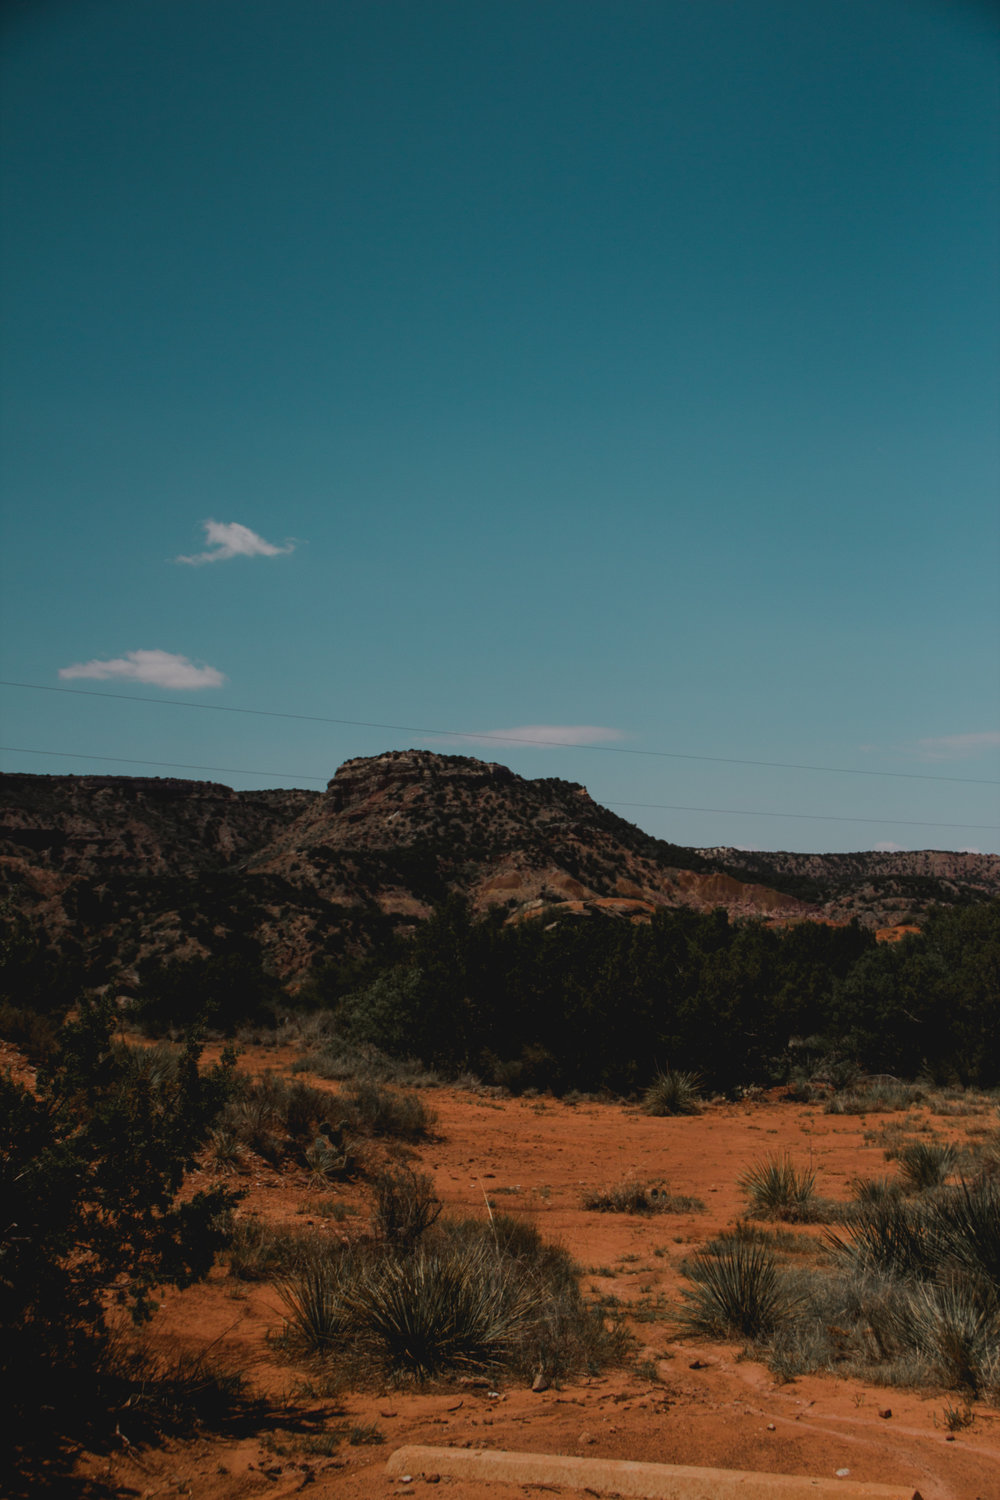 Palo Duro Canyon, Amarillo, Texas, USA